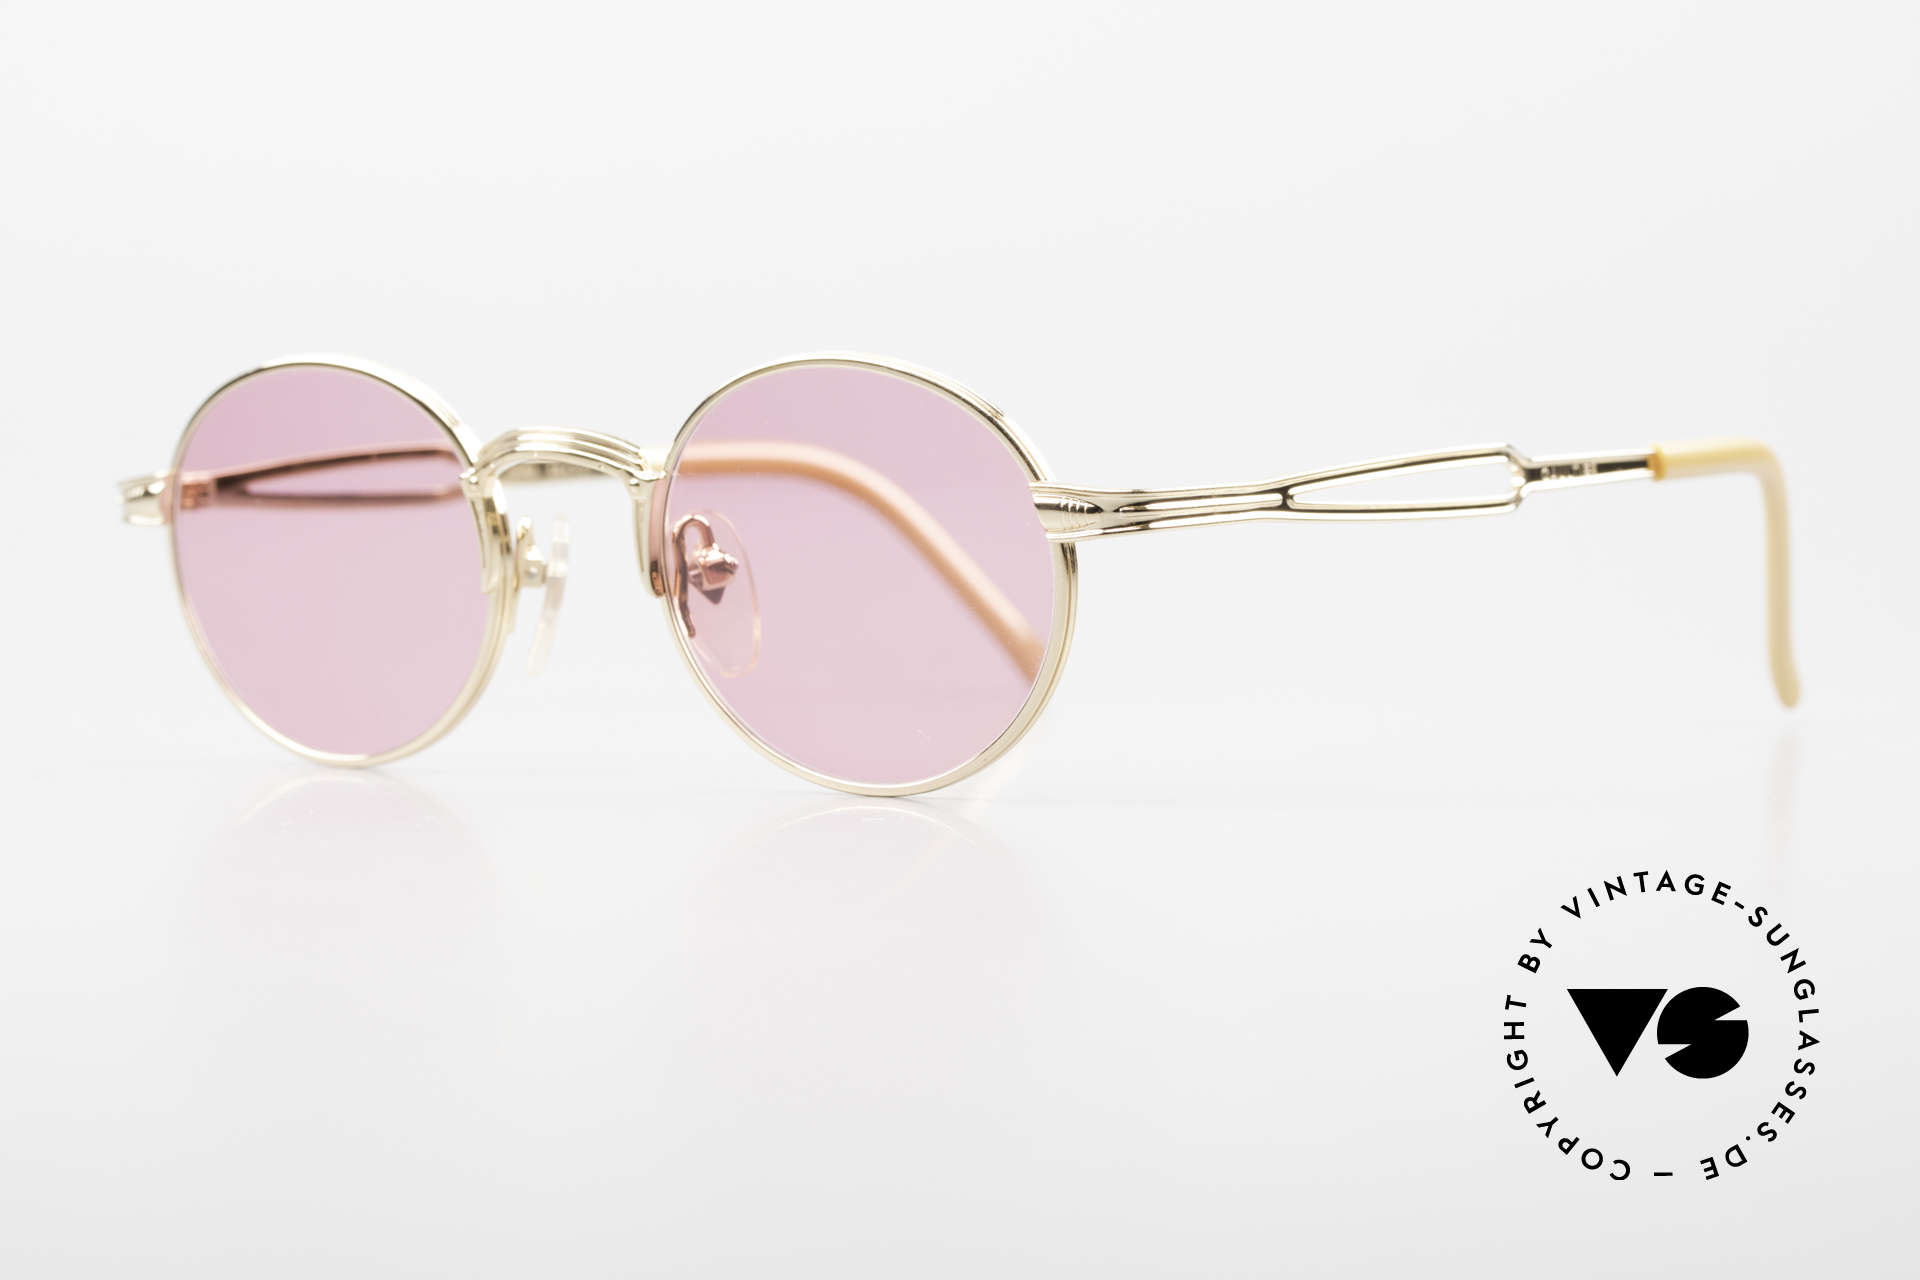 Jean Paul Gaultier 55-7107 Pink Round Glasses Gold Plated, PINK: see the world through rose-colored glasses ;), Made for Men and Women